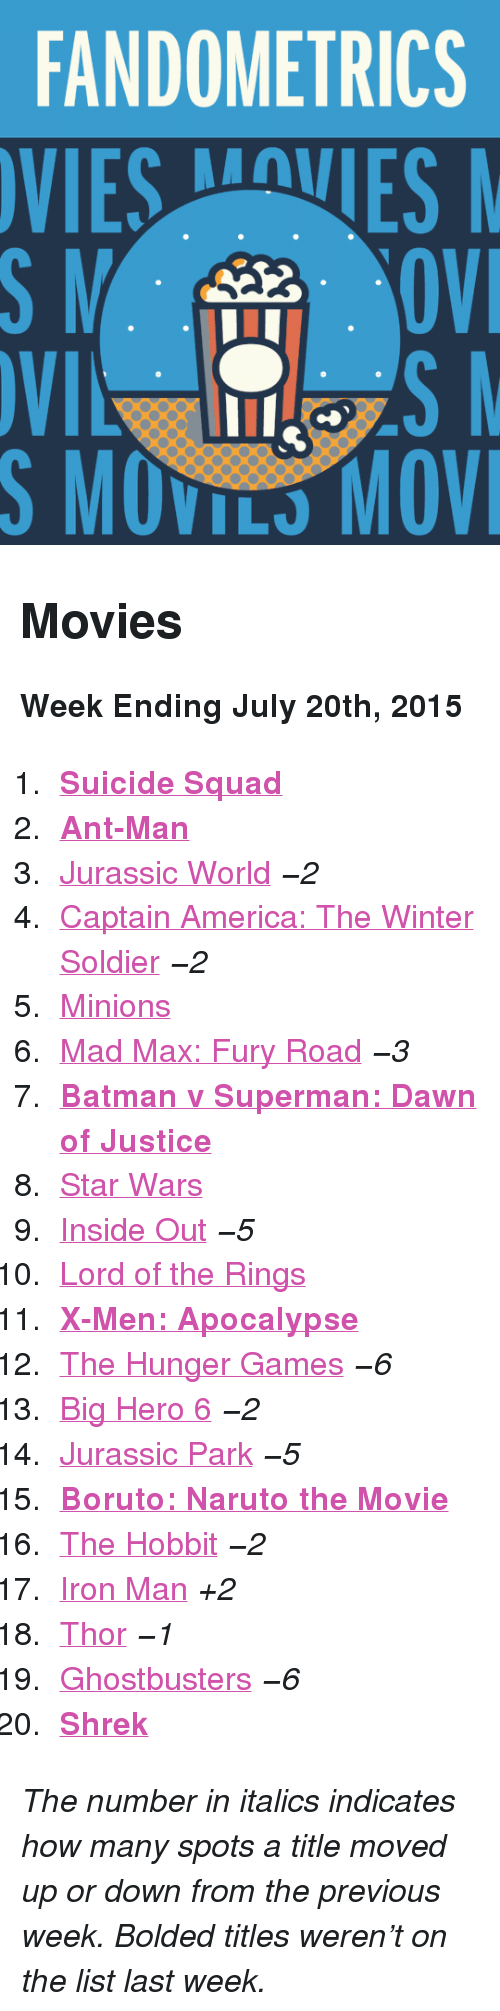 "ant man: FANDOMETRICS  VIESVES  S MOVILS MOV <h2>Movies</h2><p><b>Week Ending July 20th, 2015</b></p><ol><li><a href=""http://www.tumblr.com/search/suicide%20squad""><b>Suicide Squad</b></a></li>  <li><a href=""http://www.tumblr.com/search/ant%20man""><b>Ant-Man</b></a></li>  <li><a href=""http://www.tumblr.com/search/jurassic%20world"">Jurassic World</a> <i>−2</i></li>  <li><a href=""http://www.tumblr.com/search/captain%20america"">Captain America: The Winter Soldier</a> <i>−2</i></li>  <li><a href=""http://www.tumblr.com/search/minions"">Minions</a></li>  <li><a href=""http://www.tumblr.com/search/mad%20max"">Mad Max: Fury Road</a> <i>−3</i></li>  <li><a href=""http://www.tumblr.com/search/batman%20v%20superman""><b>Batman v Superman: Dawn of Justice</b></a></li>  <li><a href=""http://www.tumblr.com/search/star%20wars"">Star Wars</a></li>  <li><a href=""http://www.tumblr.com/search/inside%20out"">Inside Out</a> <i>−5</i></li>  <li><a href=""http://www.tumblr.com/search/lotr"">Lord of the Rings</a></li>  <li><a href=""http://www.tumblr.com/search/x-men""><b>X-Men: Apocalypse</b></a></li>  <li><a href=""http://www.tumblr.com/search/the%20hunger%20games"">The Hunger Games</a> <i>−6</i></li>  <li><a href=""http://www.tumblr.com/search/big%20hero%206"">Big Hero 6</a> <i>−2</i></li>  <li><a href=""http://www.tumblr.com/search/jurassic%20park"">Jurassic Park</a> <i>−5</i></li>  <li><a href=""http://www.tumblr.com/search/boruto%20the%20movie""><b>Boruto: Naruto the Movie</b></a></li>  <li><a href=""http://www.tumblr.com/search/the%20hobbit"">The Hobbit</a> <i>−2</i></li>  <li><a href=""http://www.tumblr.com/search/iron%20man"">Iron Man</a> <i>+2</i></li>  <li><a href=""http://www.tumblr.com/search/thor"">Thor</a> <i>−1</i></li>  <li><a href=""http://www.tumblr.com/search/ghostbusters"">Ghostbusters</a> <i>−6</i></li>  <li><a href=""http://www.tumblr.com/search/shrek""><b>Shrek</b></a></li></ol><p><i>The number in italics indicates how many spots a title moved up or down from the previous week. Bolded titles weren't on the list last week.</i></p>"